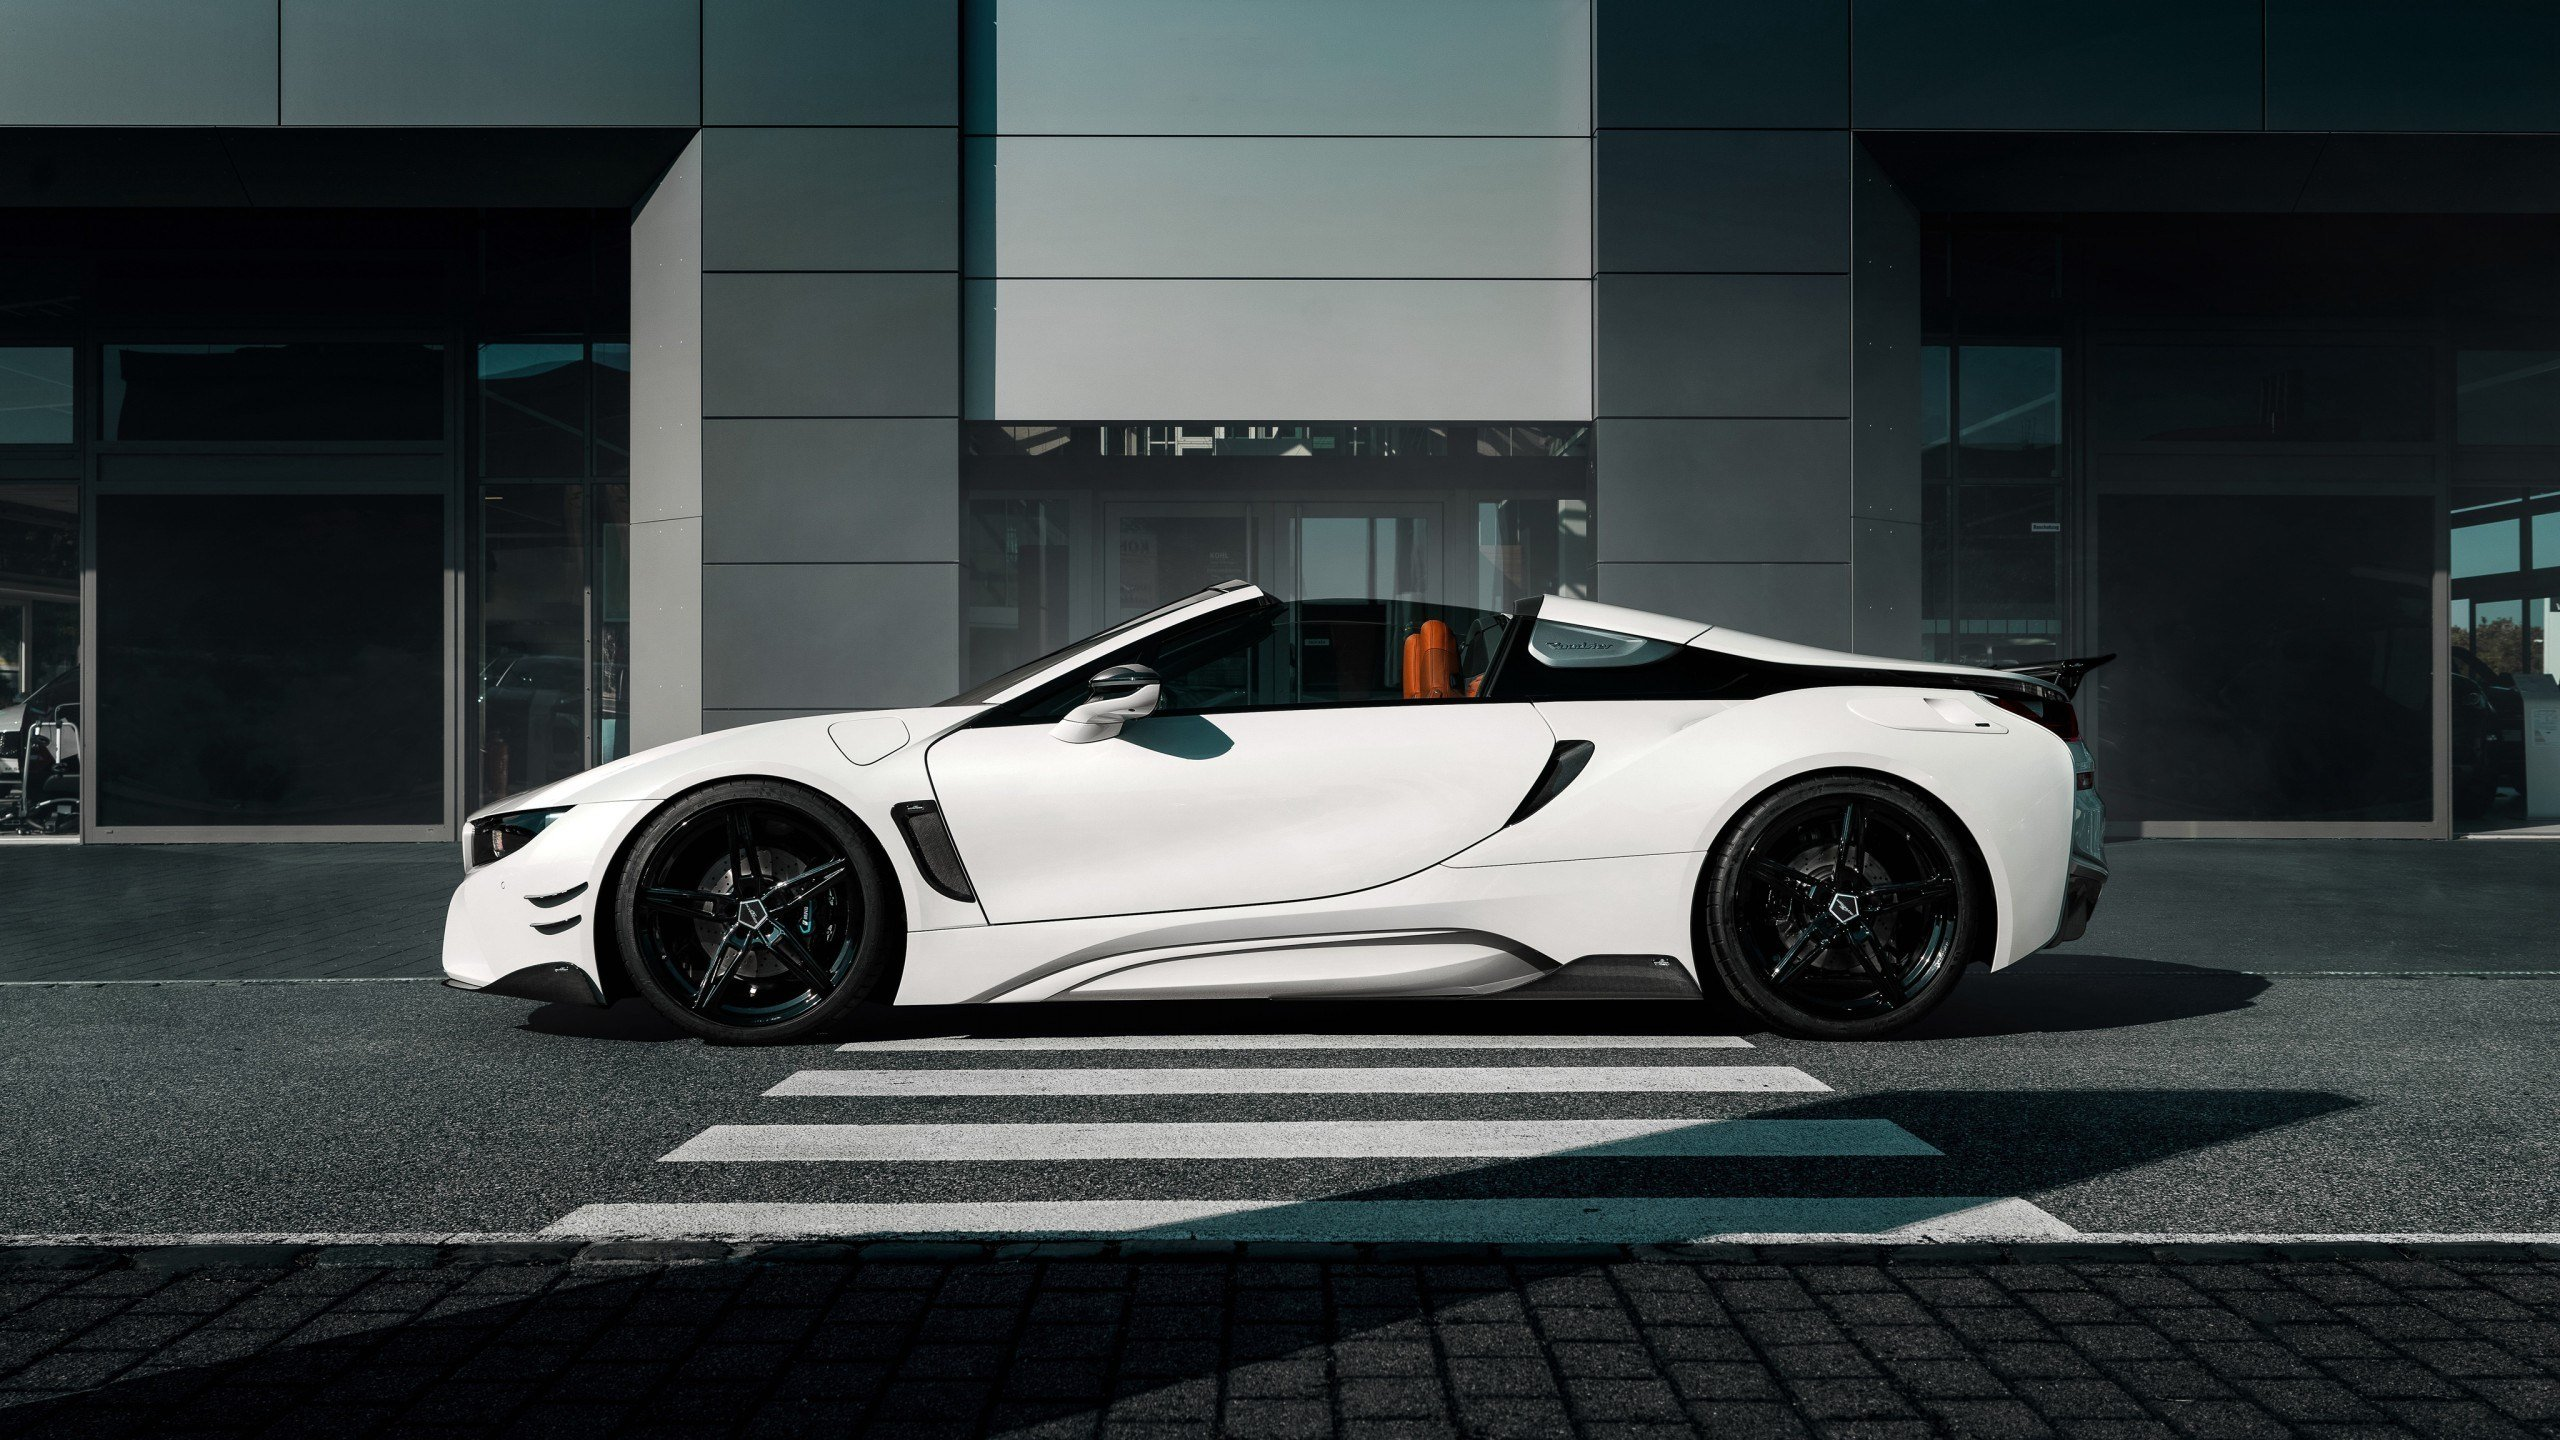 Latest Wallpaper Bmw I8 Roadster Ac Schnitzer 2018 Cars Free Download